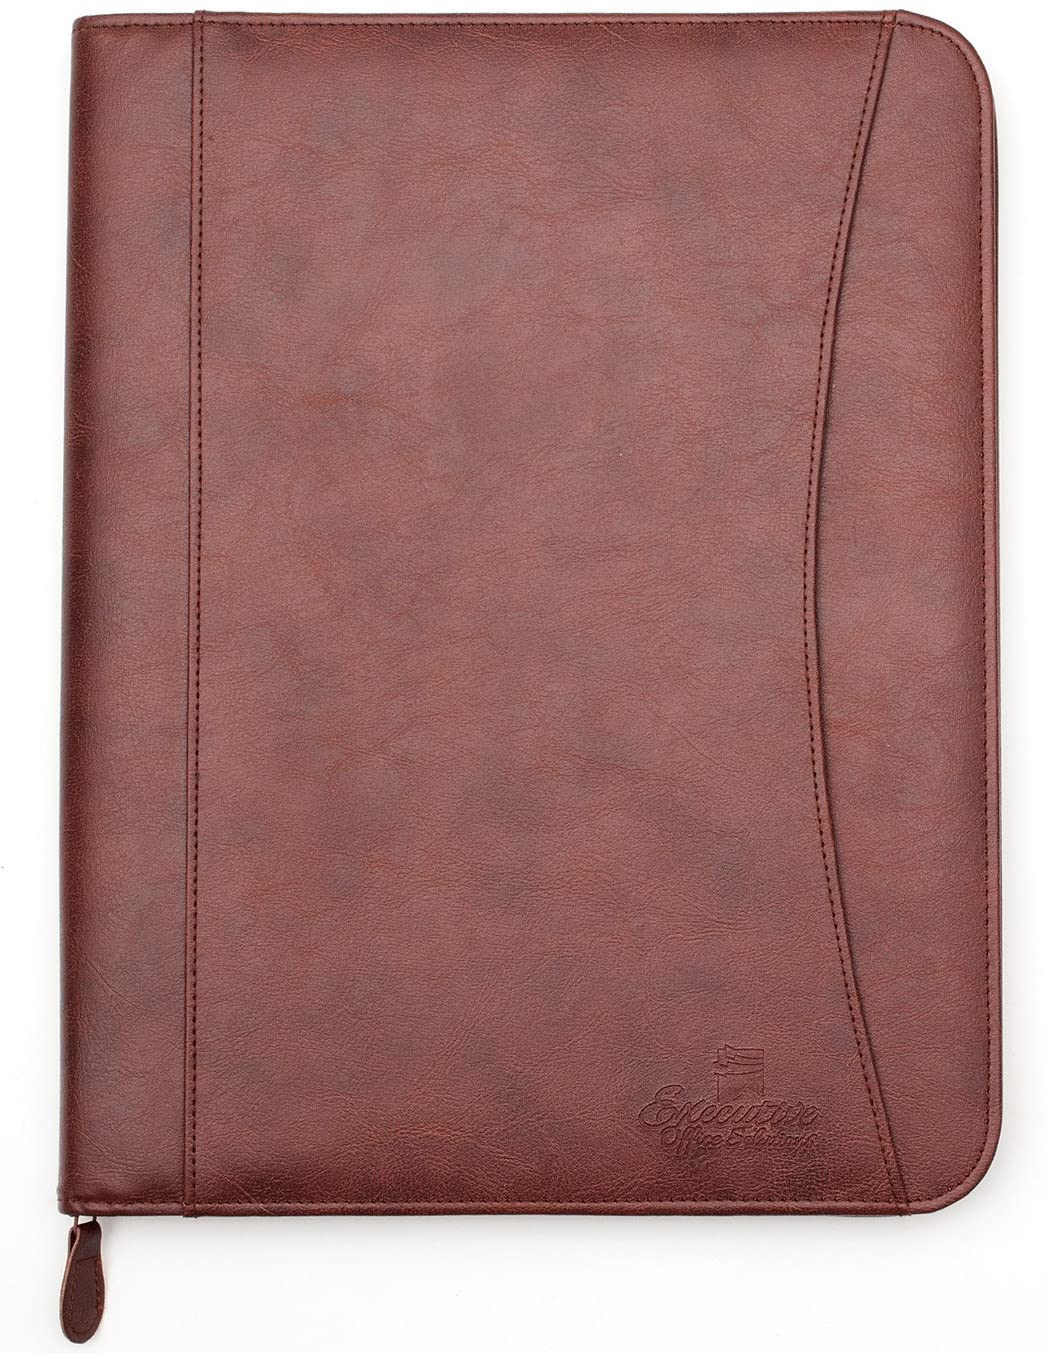 <strong>10. Professional Executive PU Leather Business Resume Portfolio</strong>